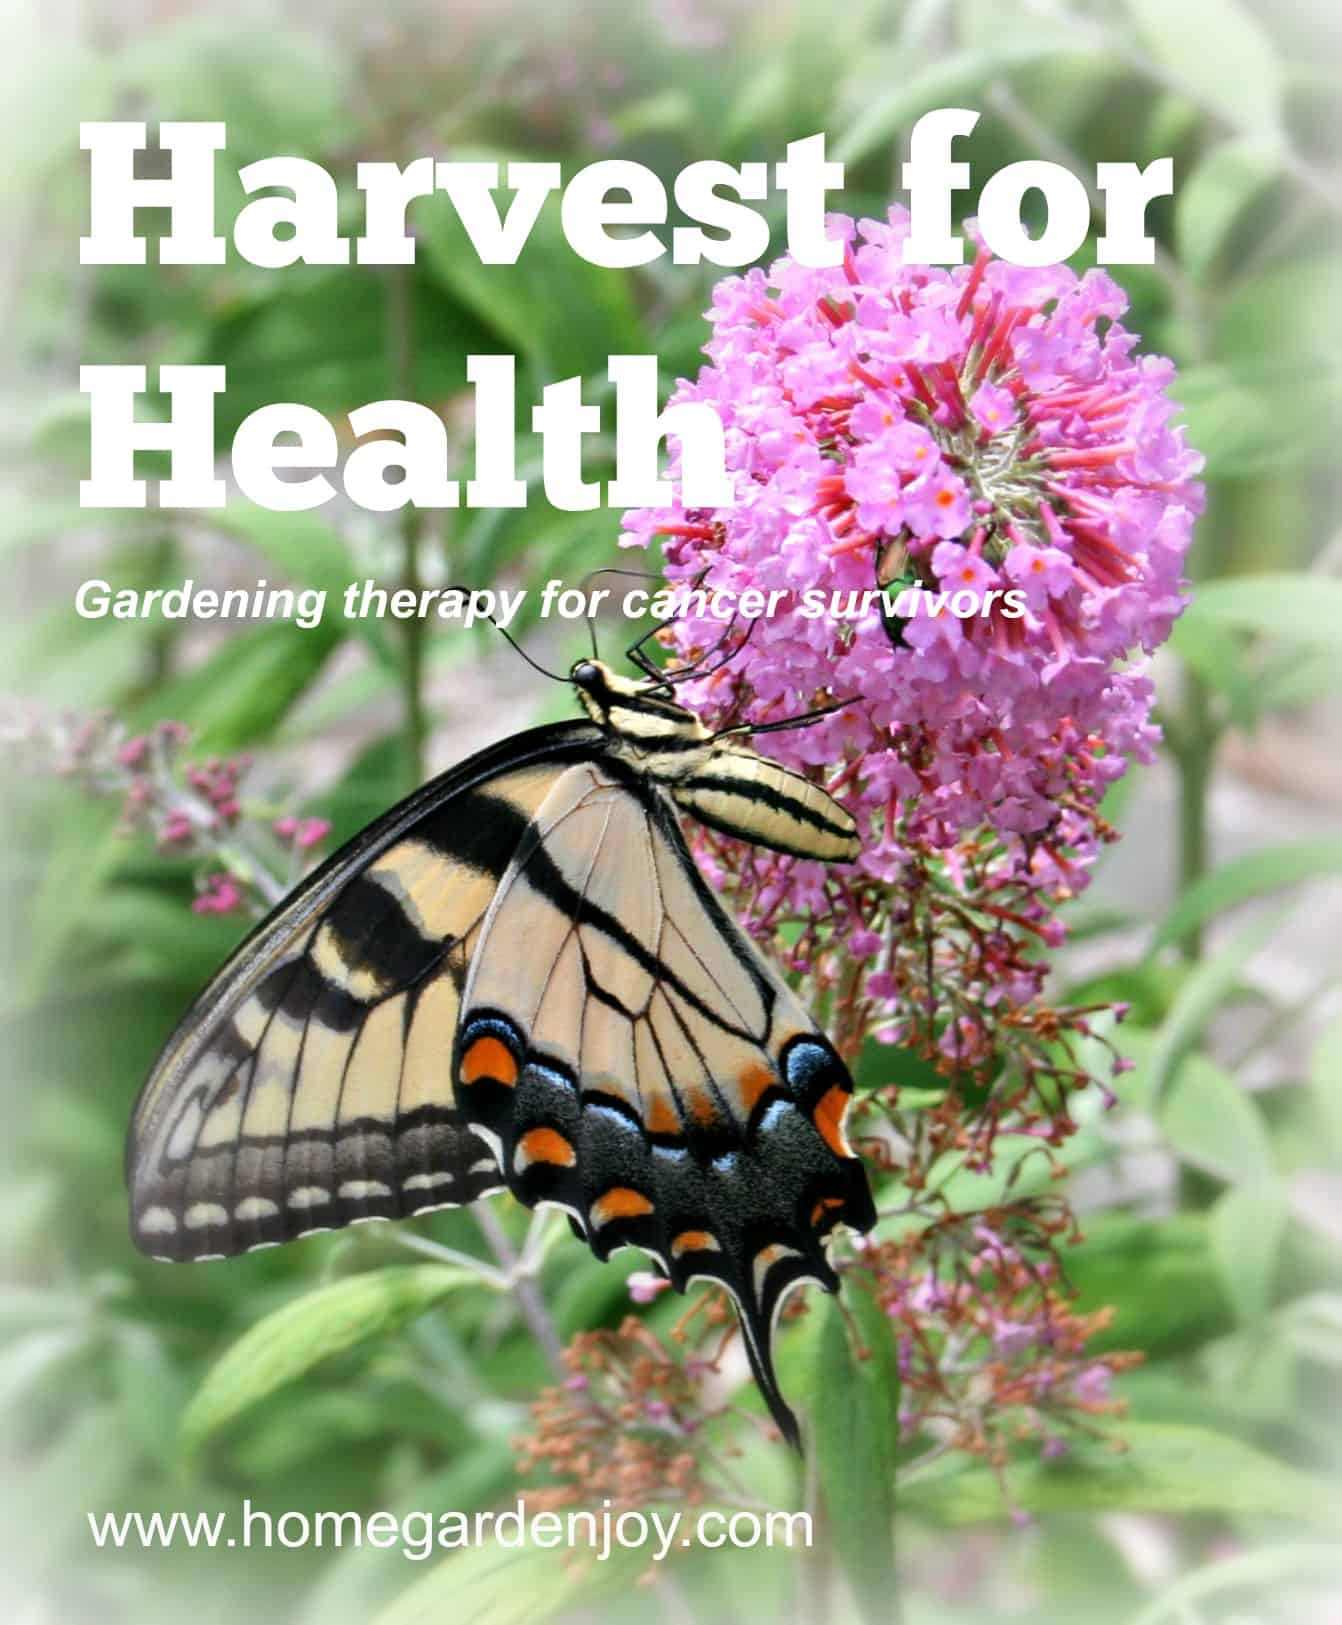 Harvest for Health Uses Gardening as Therapy